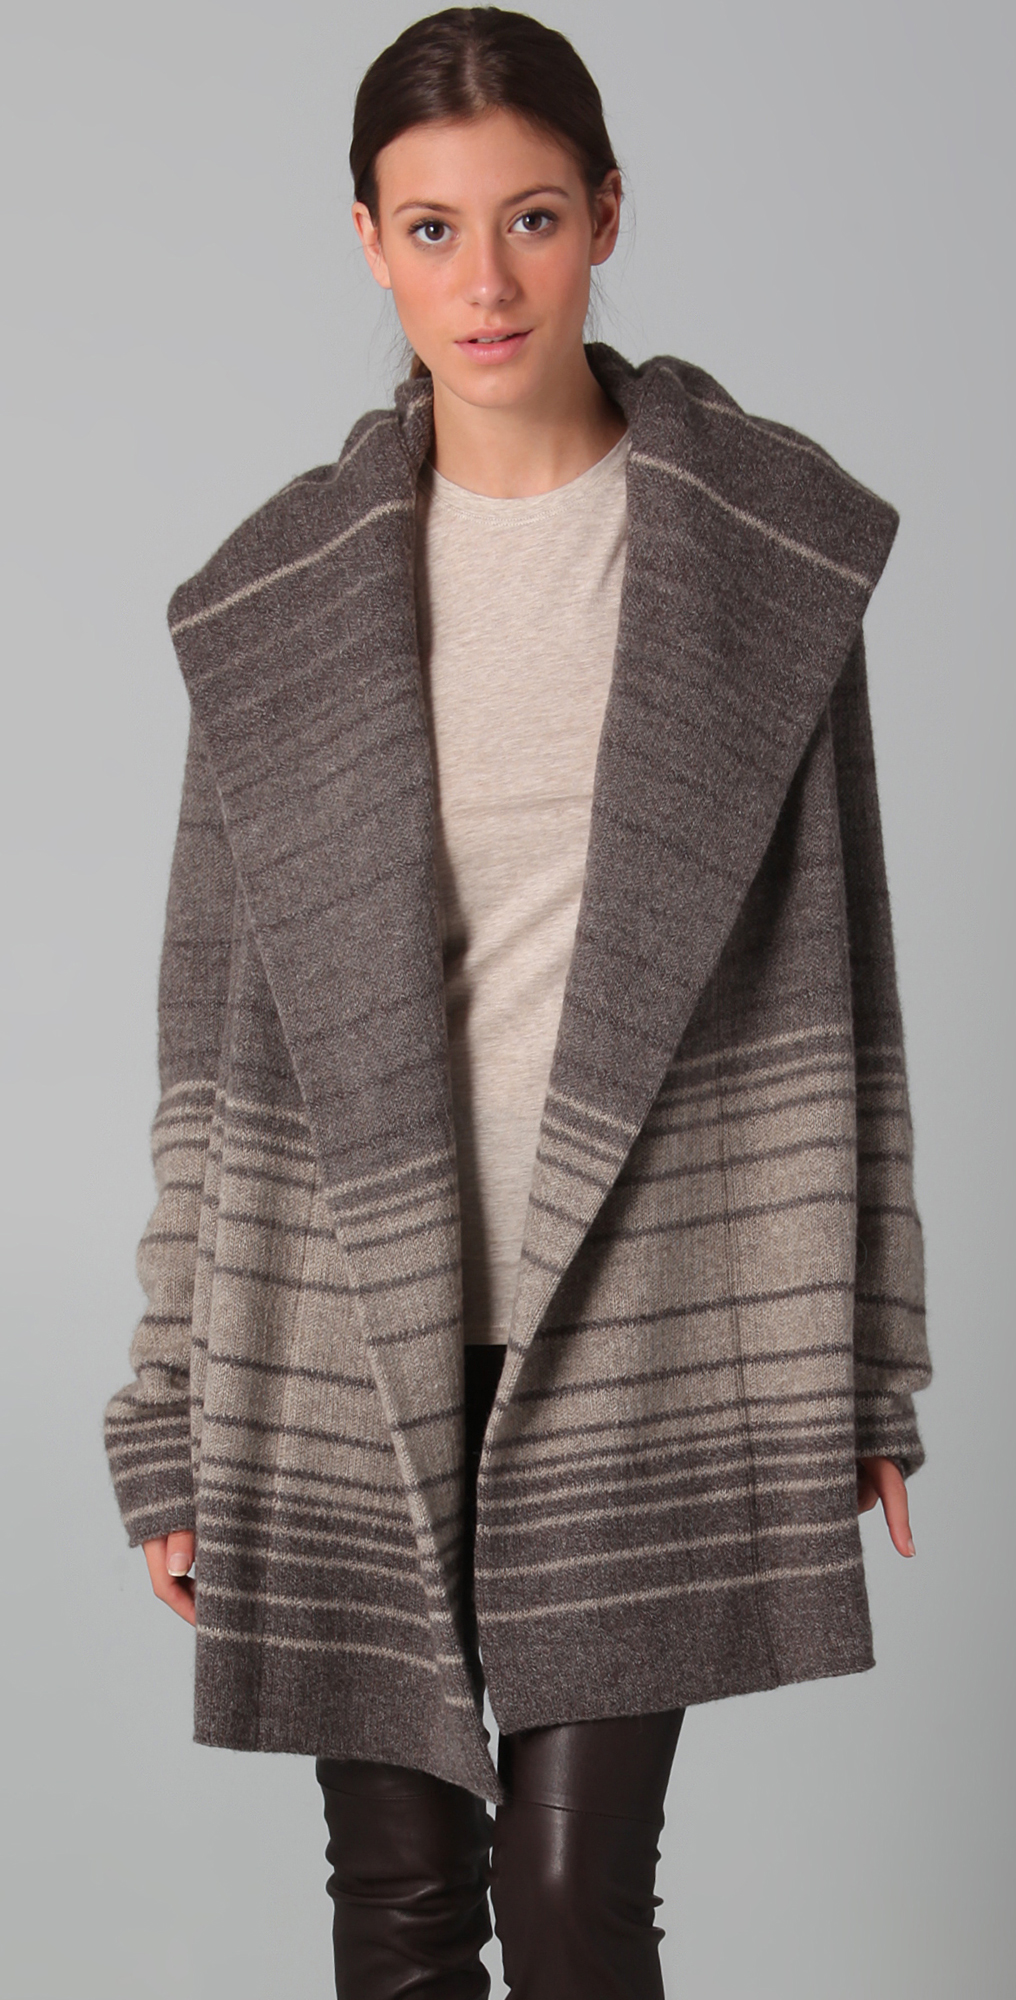 Vince Sophie Striped Sweater Coat | SHOPBOP SAVE UP TO 30% Use ...